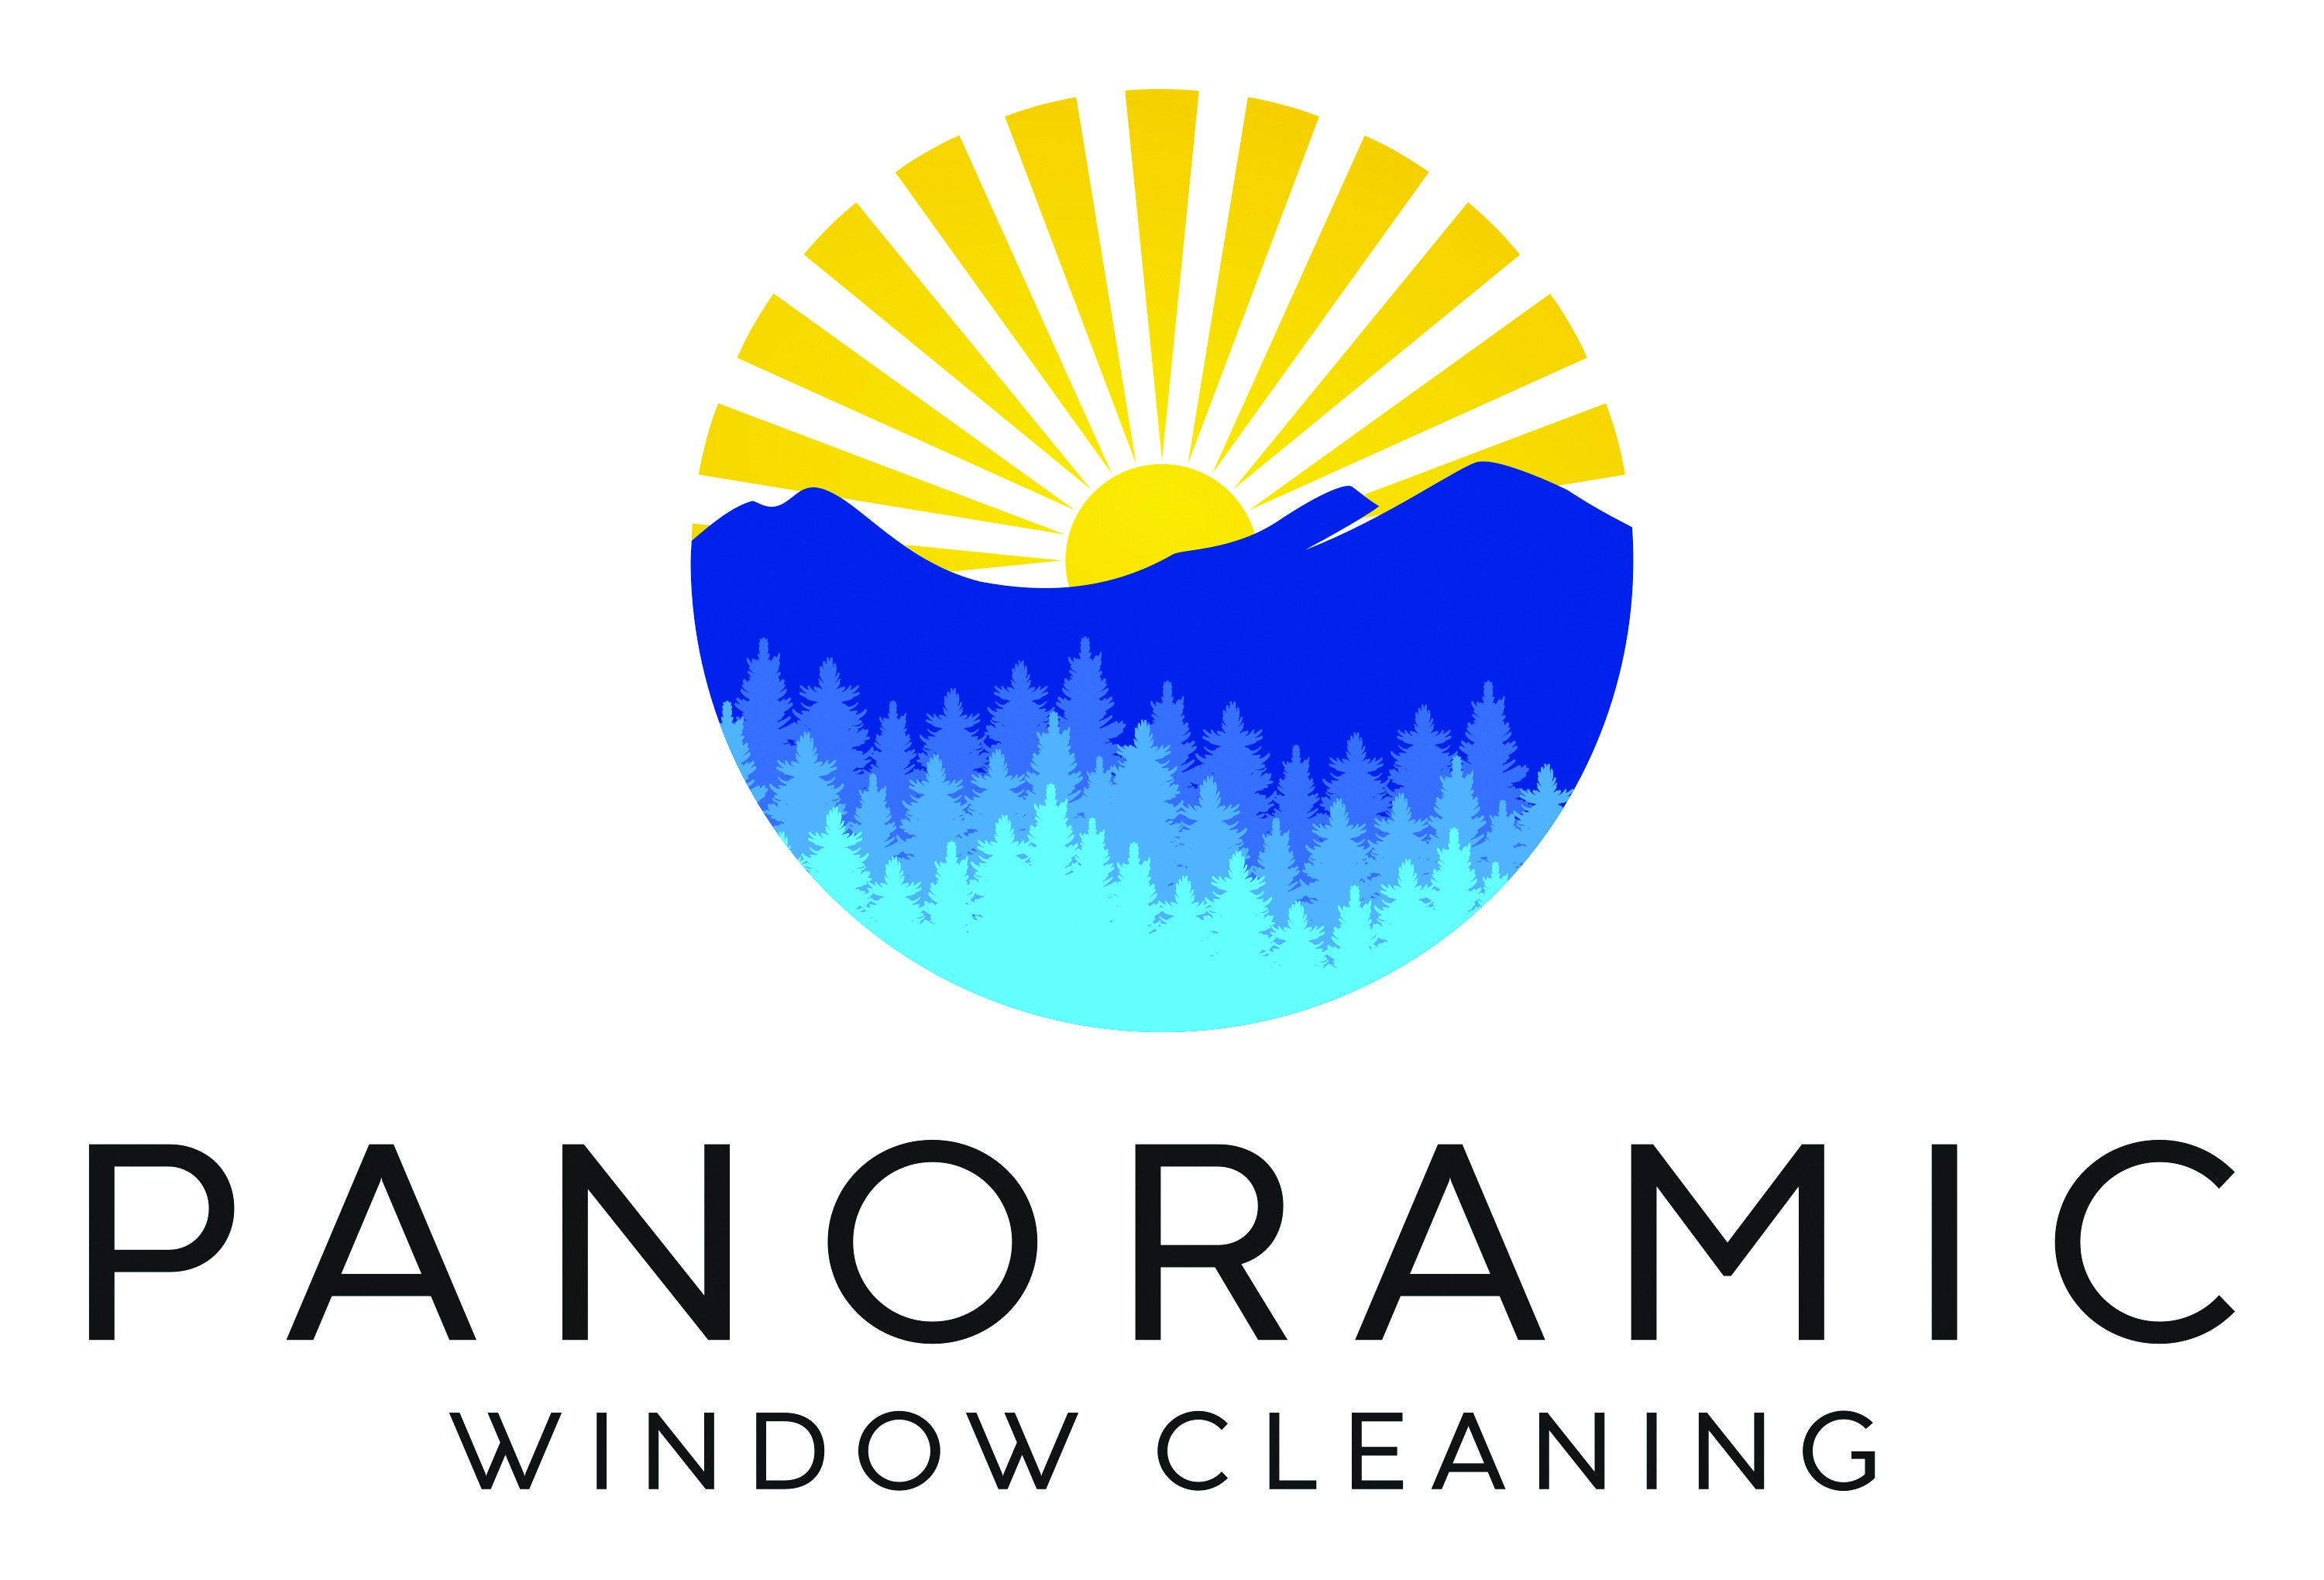 Psychedelic window cleaner needs a clean logo for all these cowboys